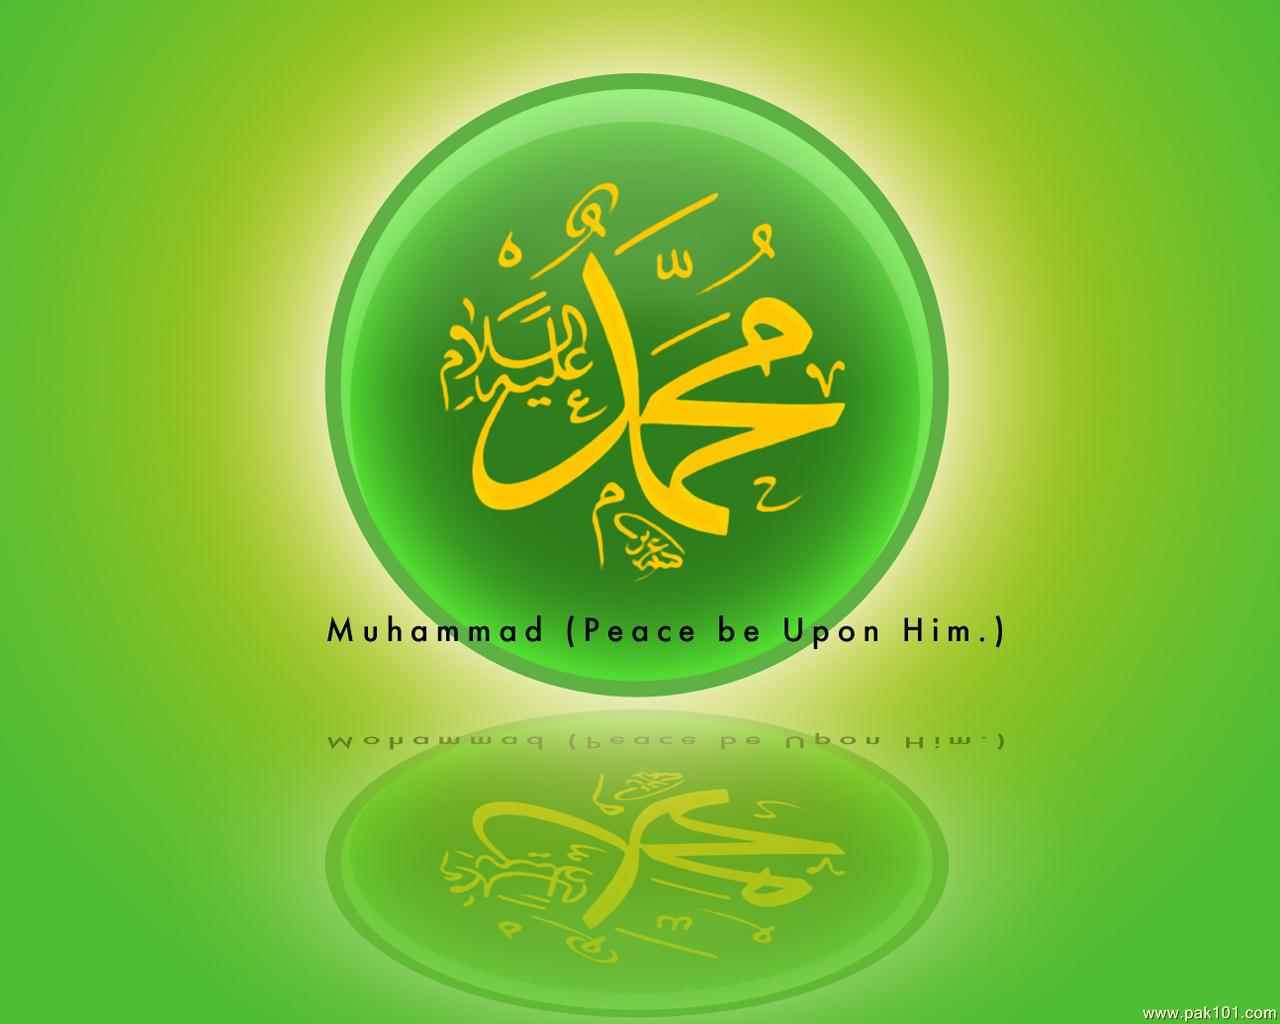 Muhammad Pak Hd Wallpapers Free For Desktop Hd Wallpaper